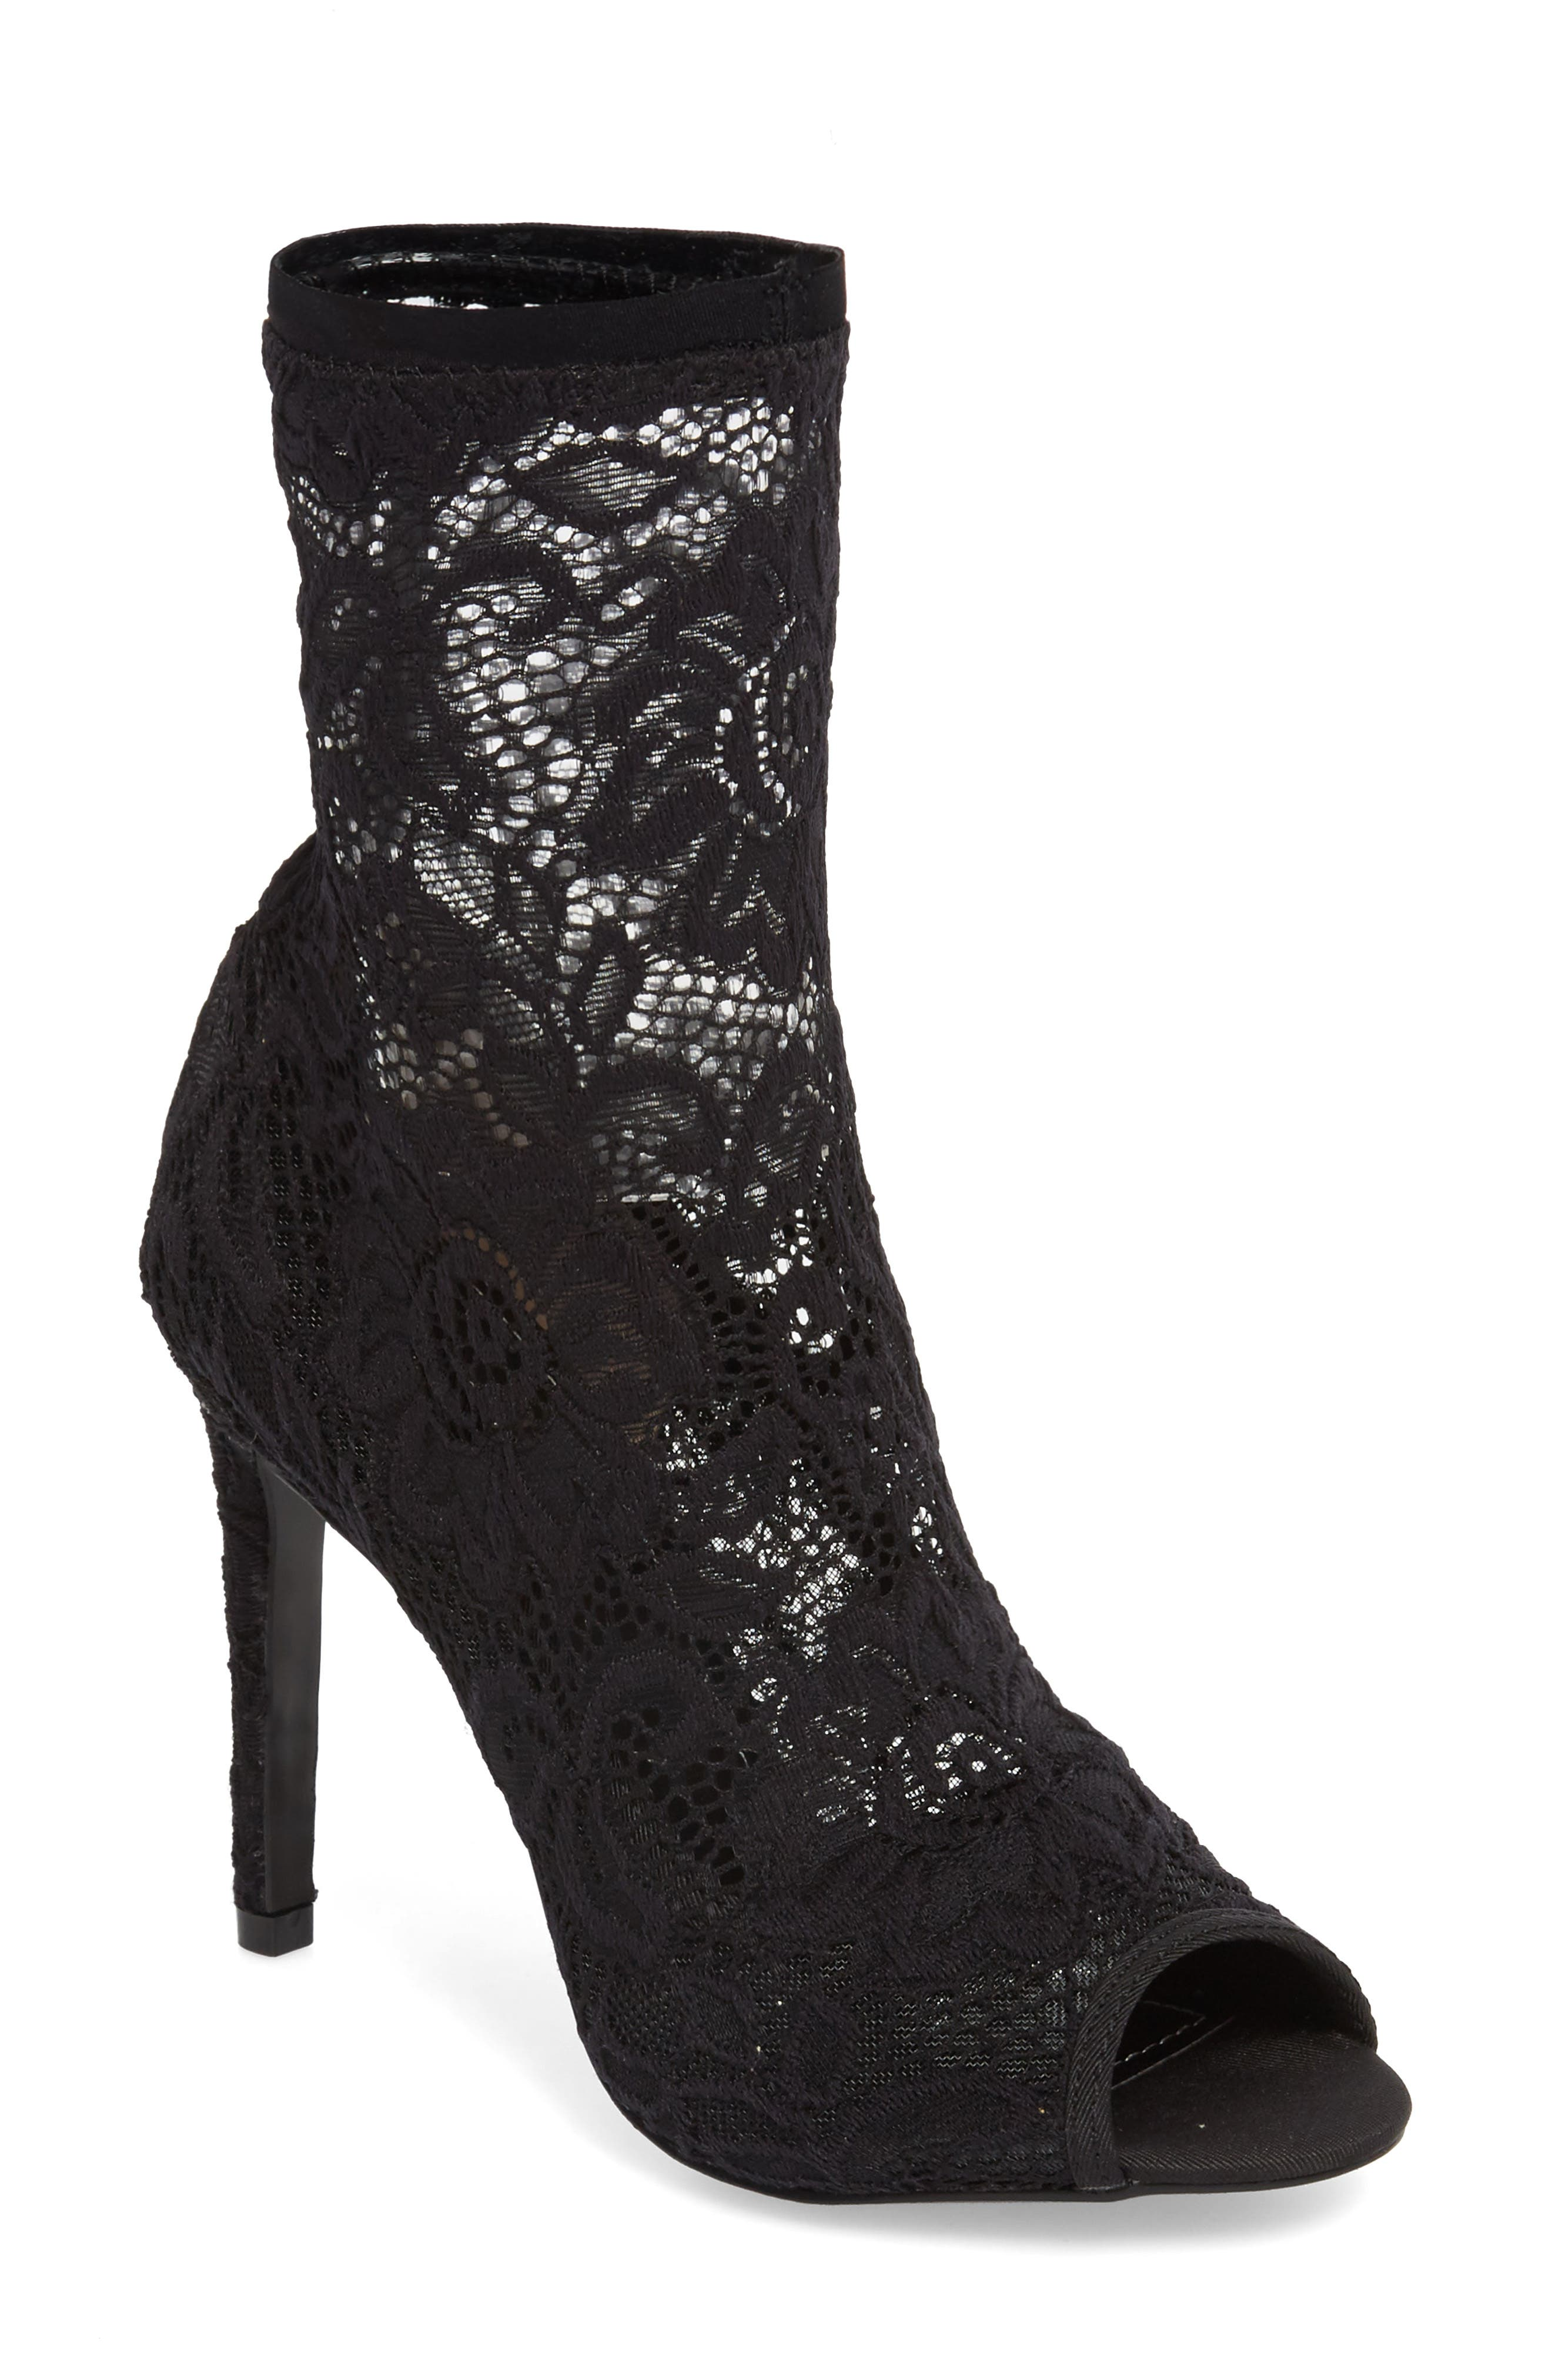 Imaginary Lace Sock Bootie,                         Main,                         color, BLACK FABRIC